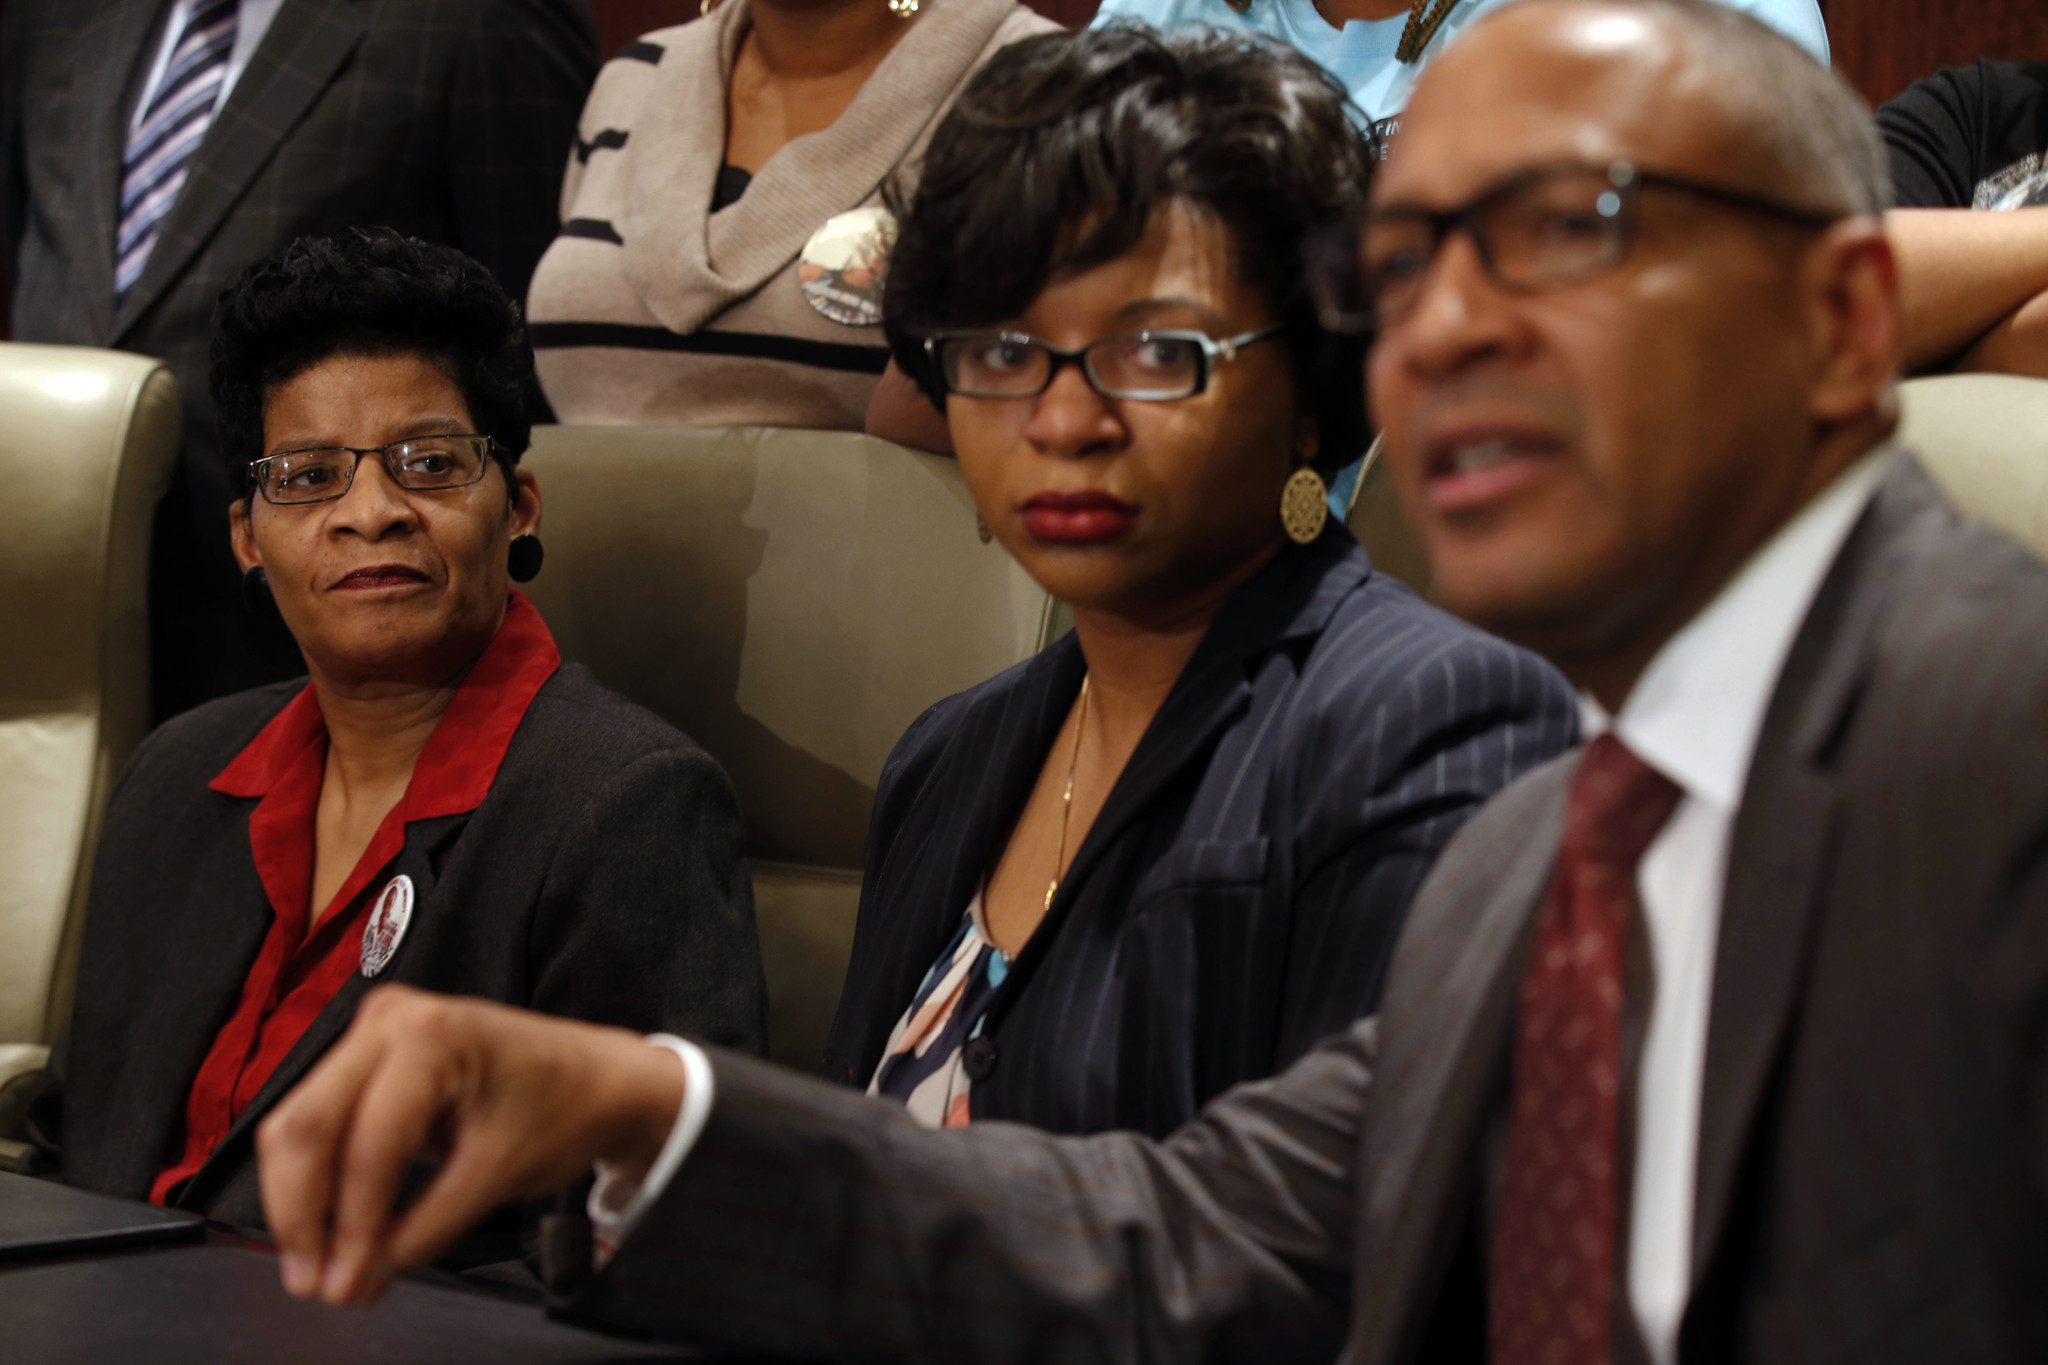 Sandra Bland's family rejects prosecutor's offer to meet about probe into jail death